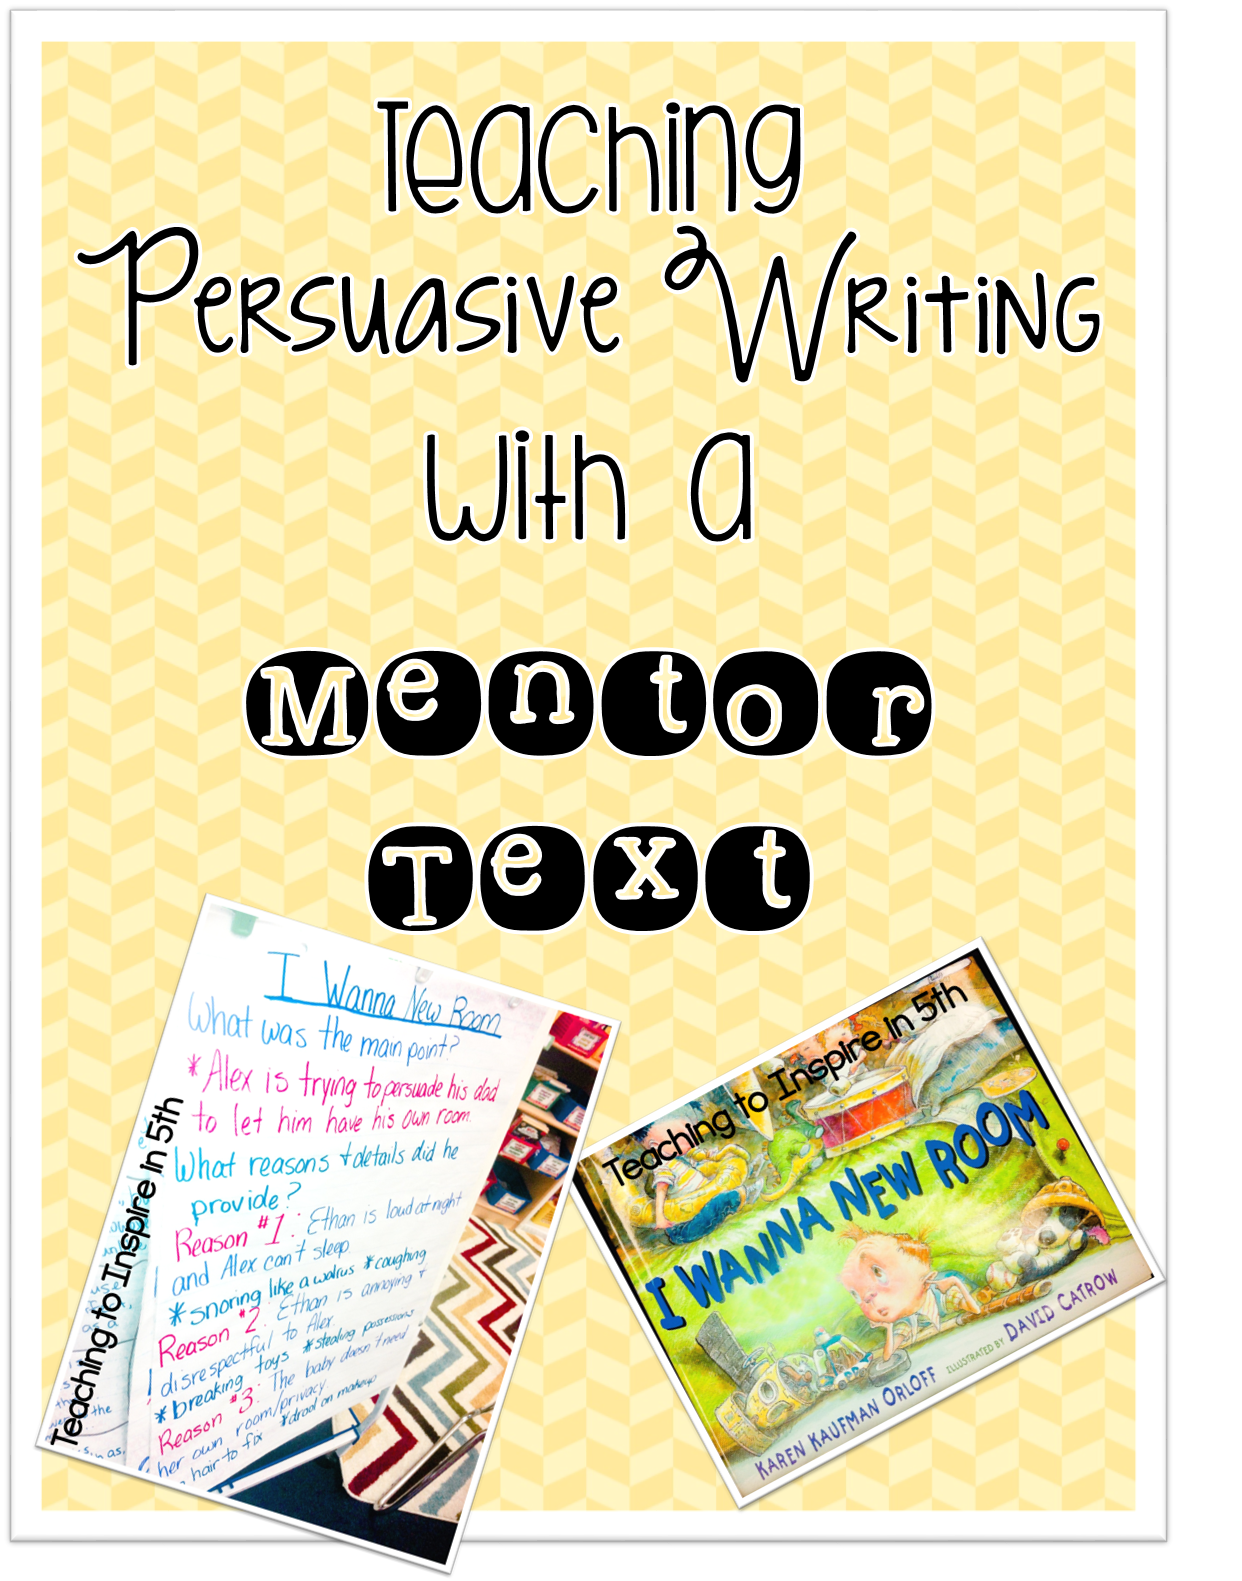 000 Teaching Persuasive Writing with a Mentor Text (Teaching